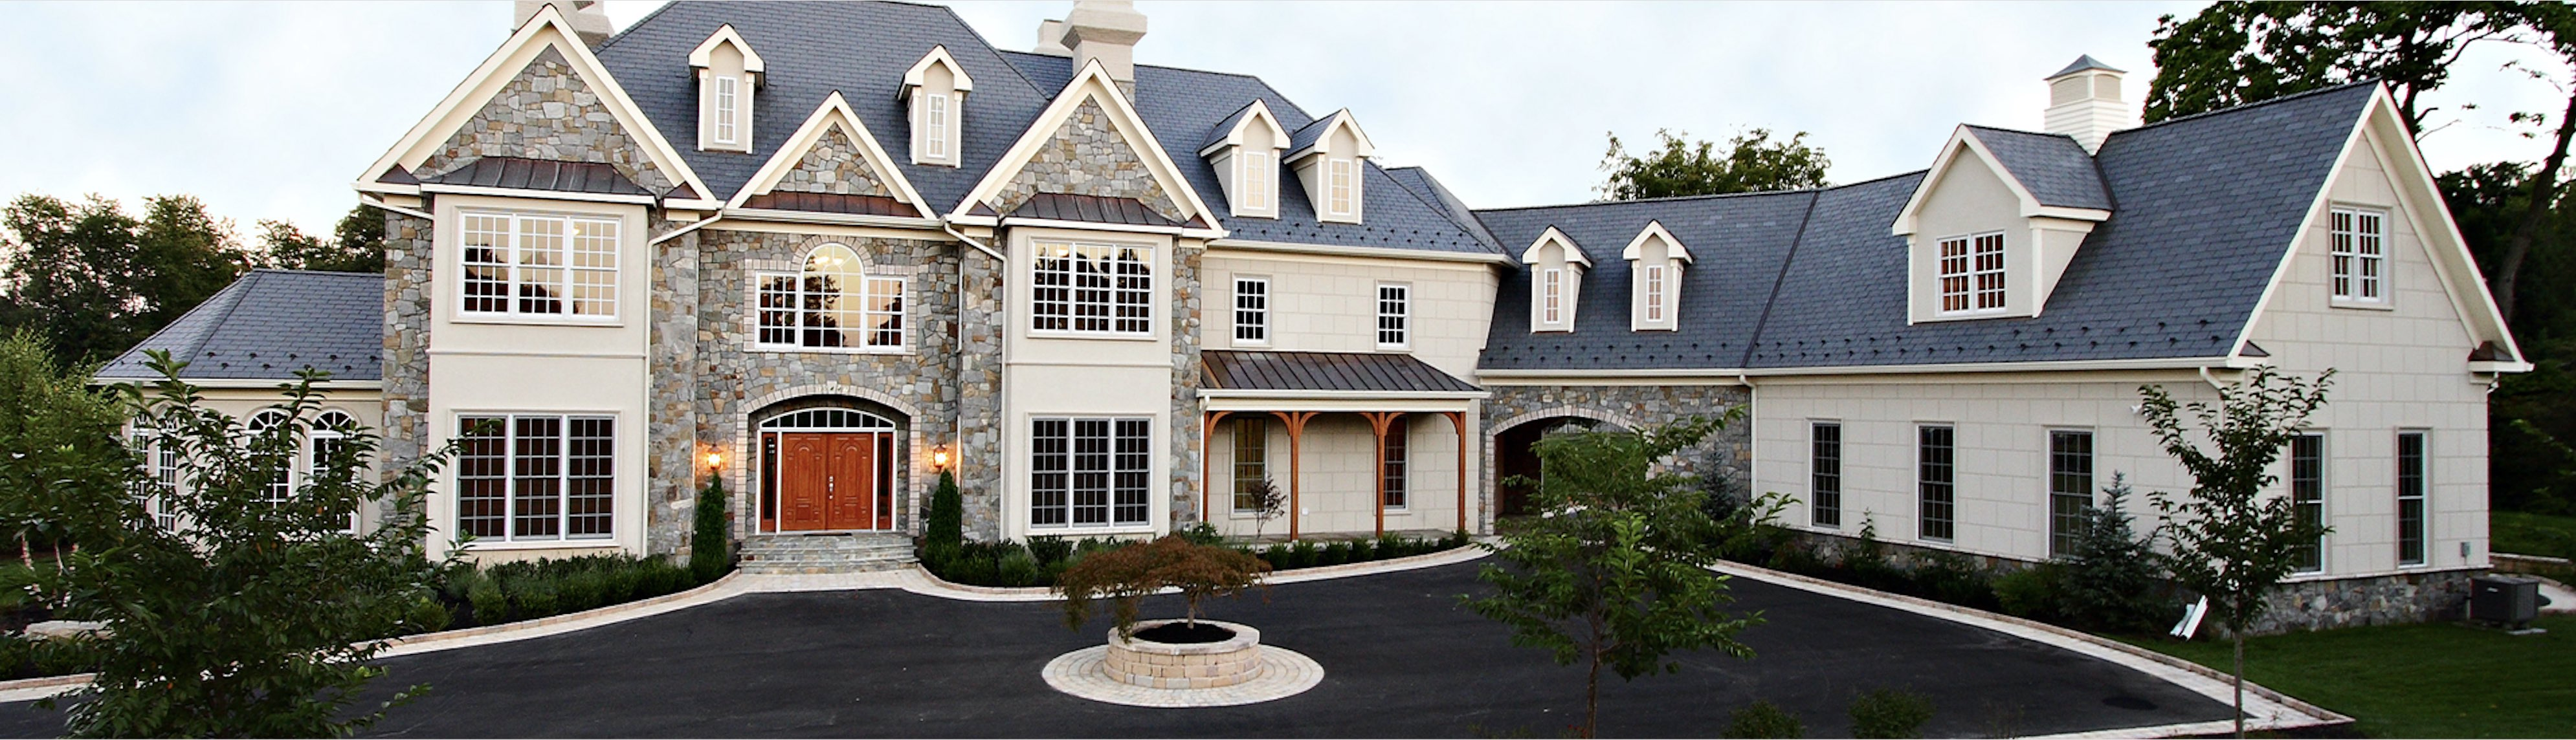 Single Family for Sale at By Botero Homes In Clifton-English Manor I -Future Construction Yates Ford Rd Clifton, Virginia 20124 United States